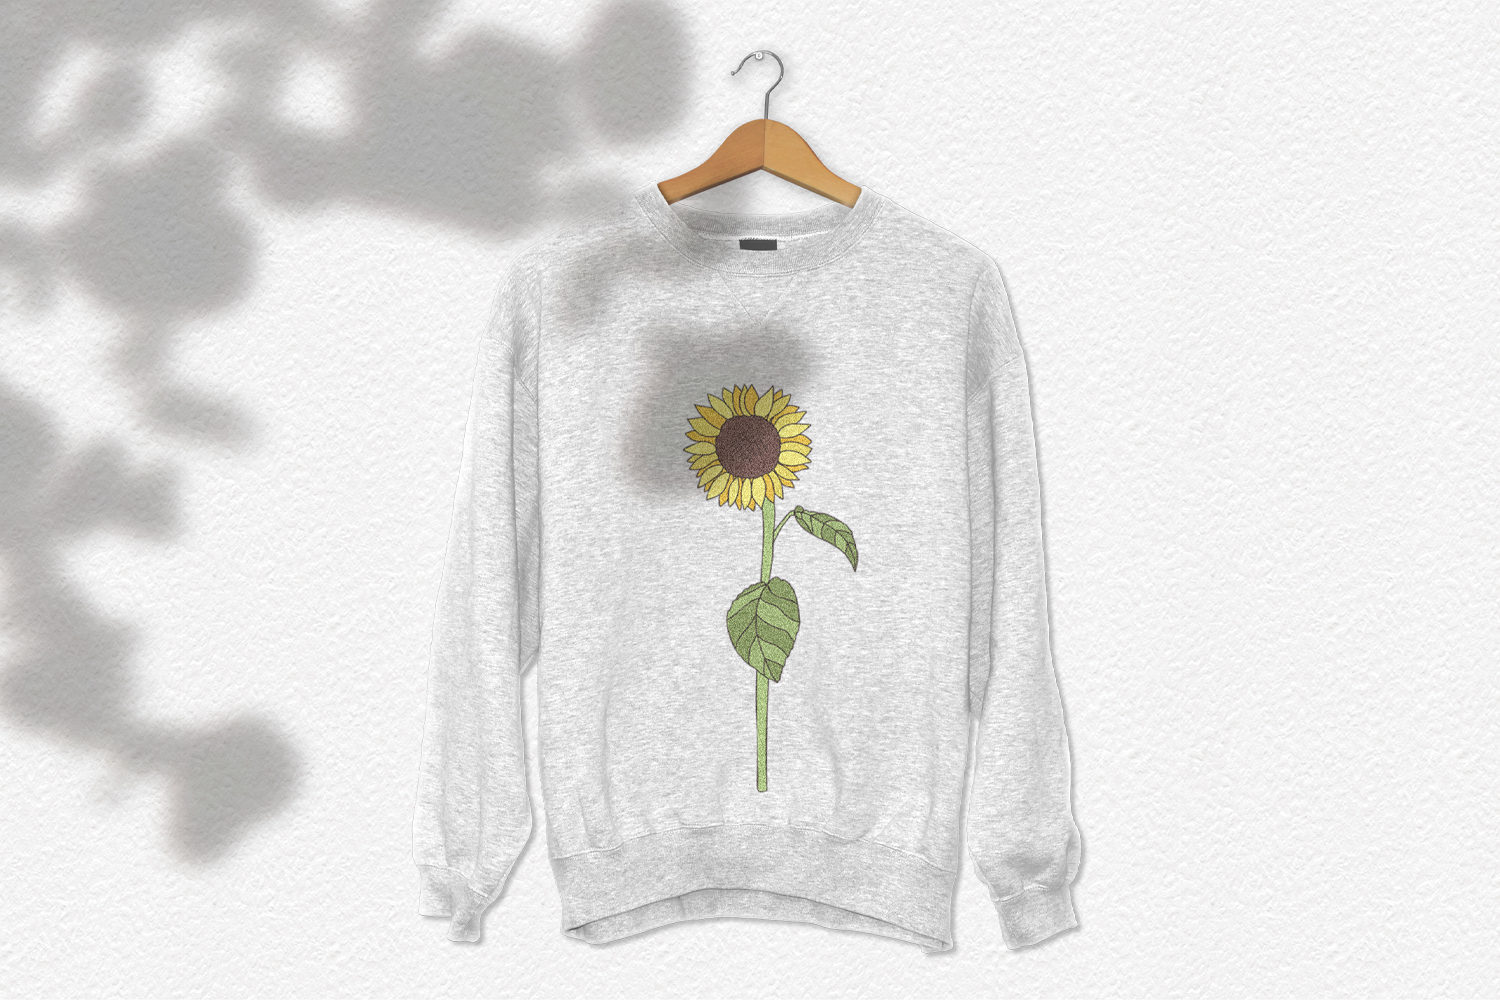 20 Sunflower Clipart Elements example image 5